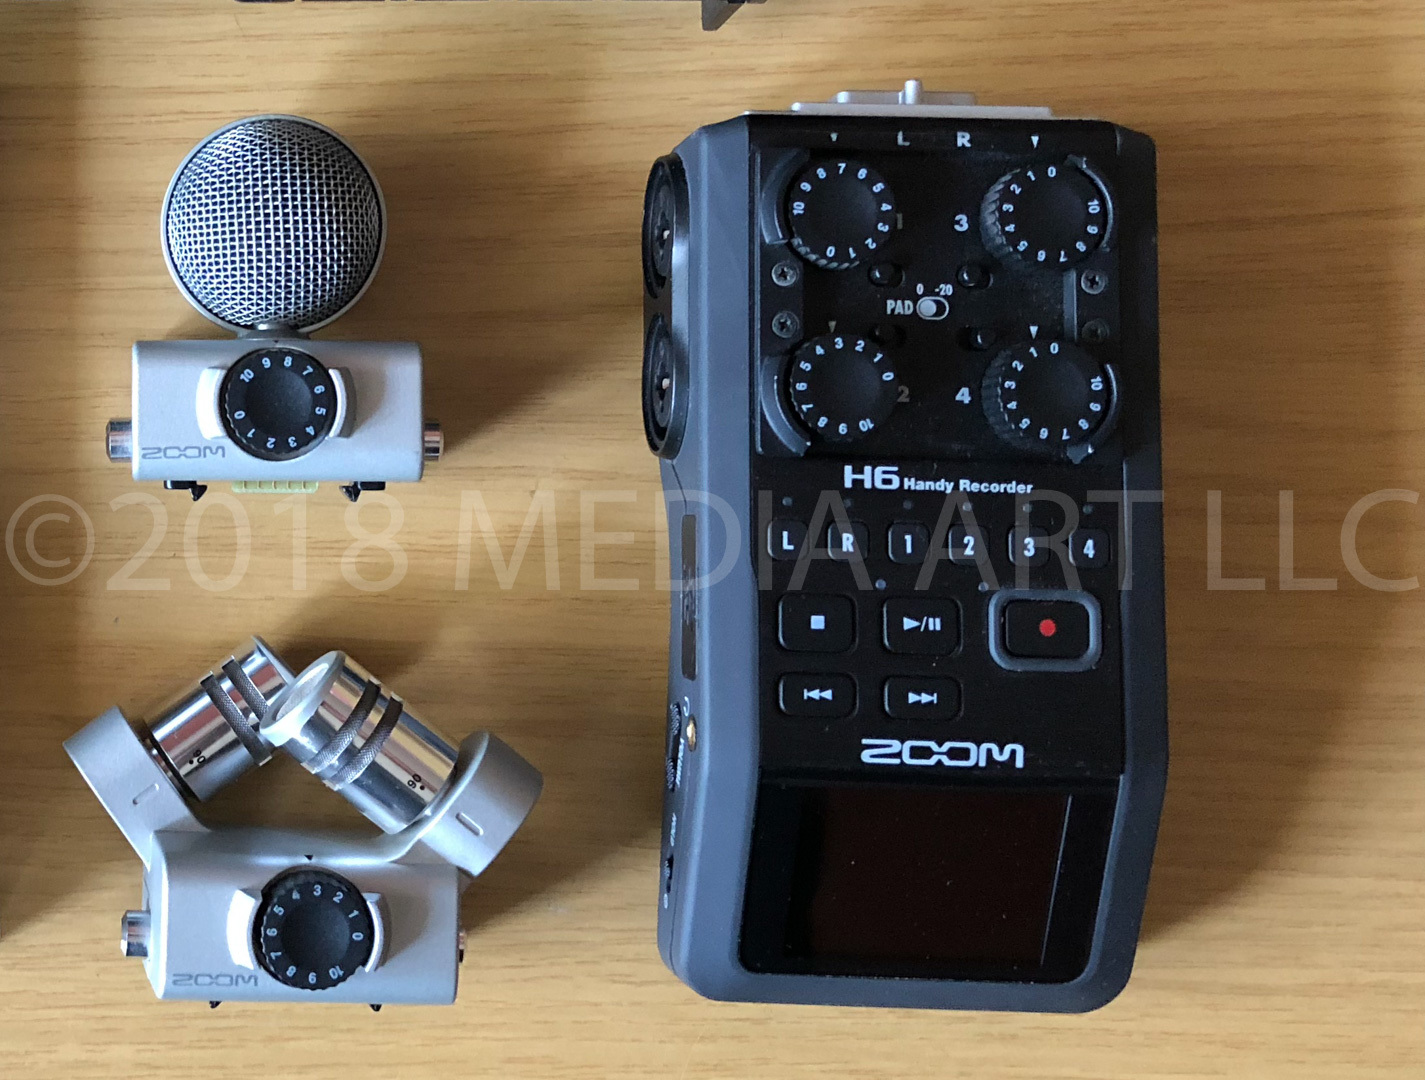 Rent a Zoom H6 Handy Recorder w/ Interchangeable Microphone System |  ShareGrid DC Baltimore